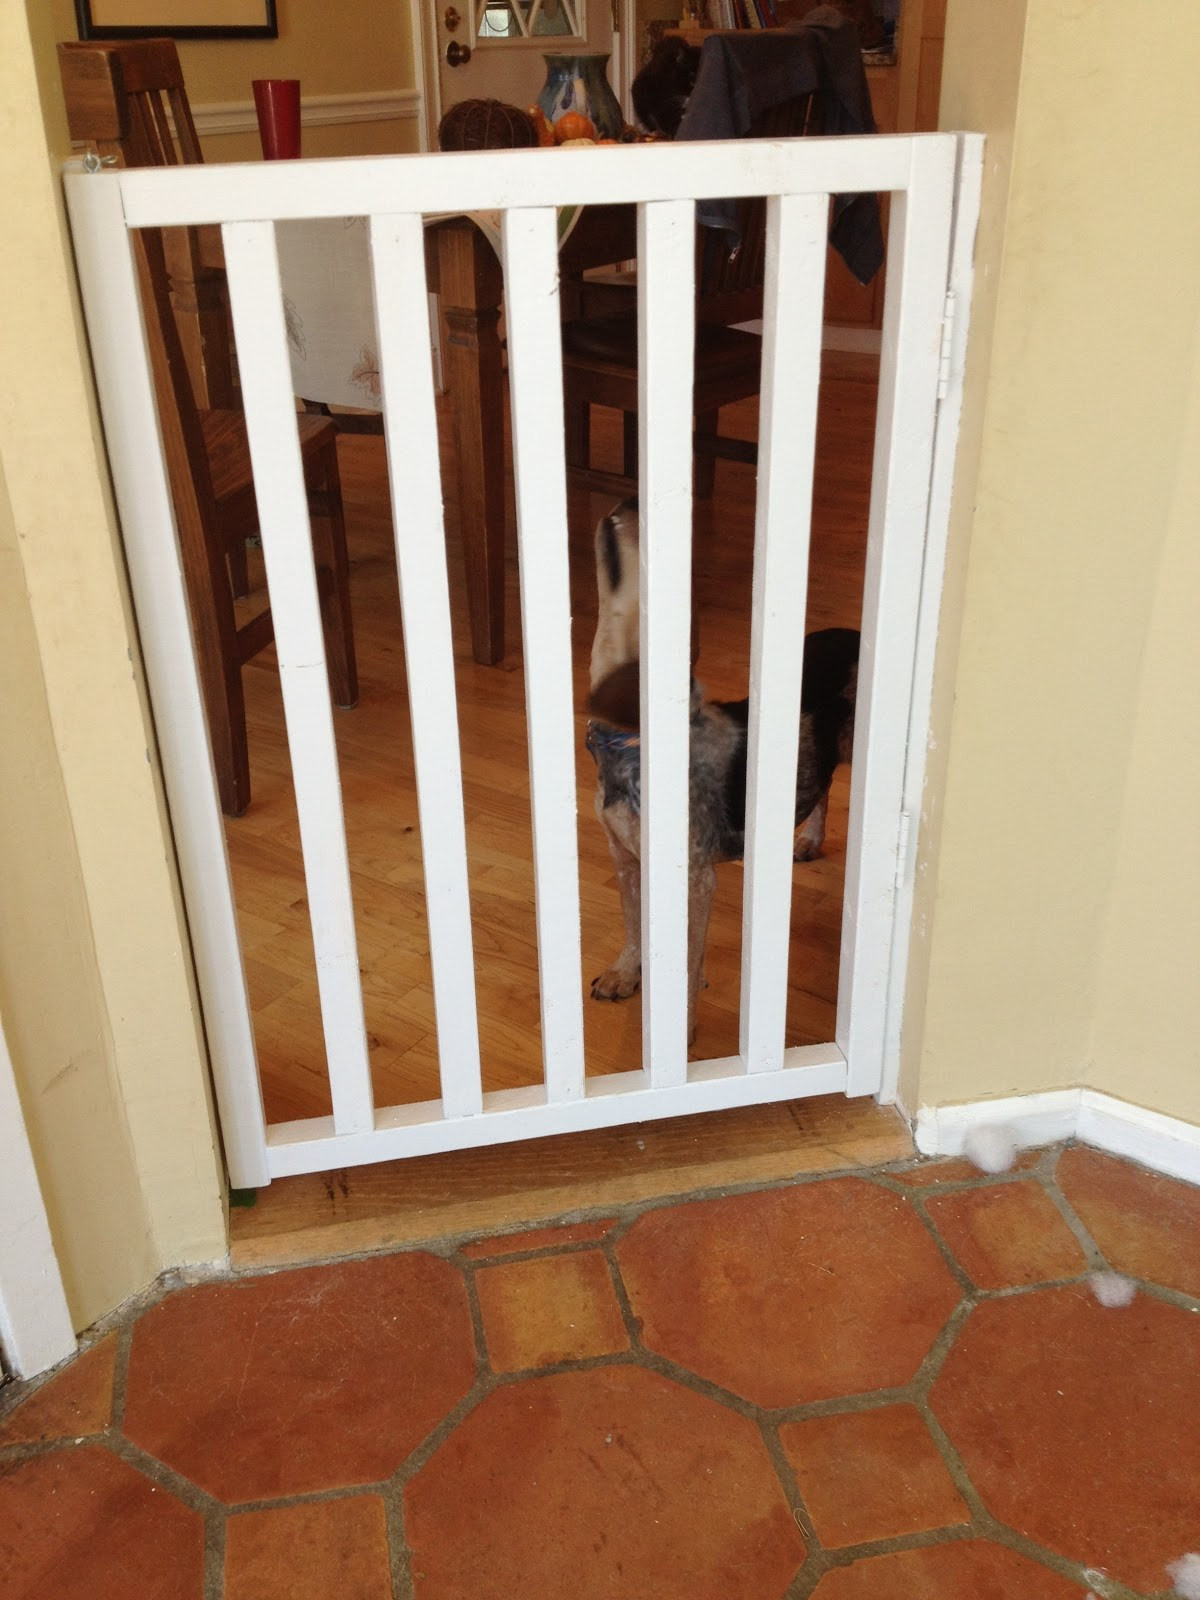 Best ideas about DIY Baby Fence . Save or Pin Weekend project 2 revealed DIY wooden baby gate Now.